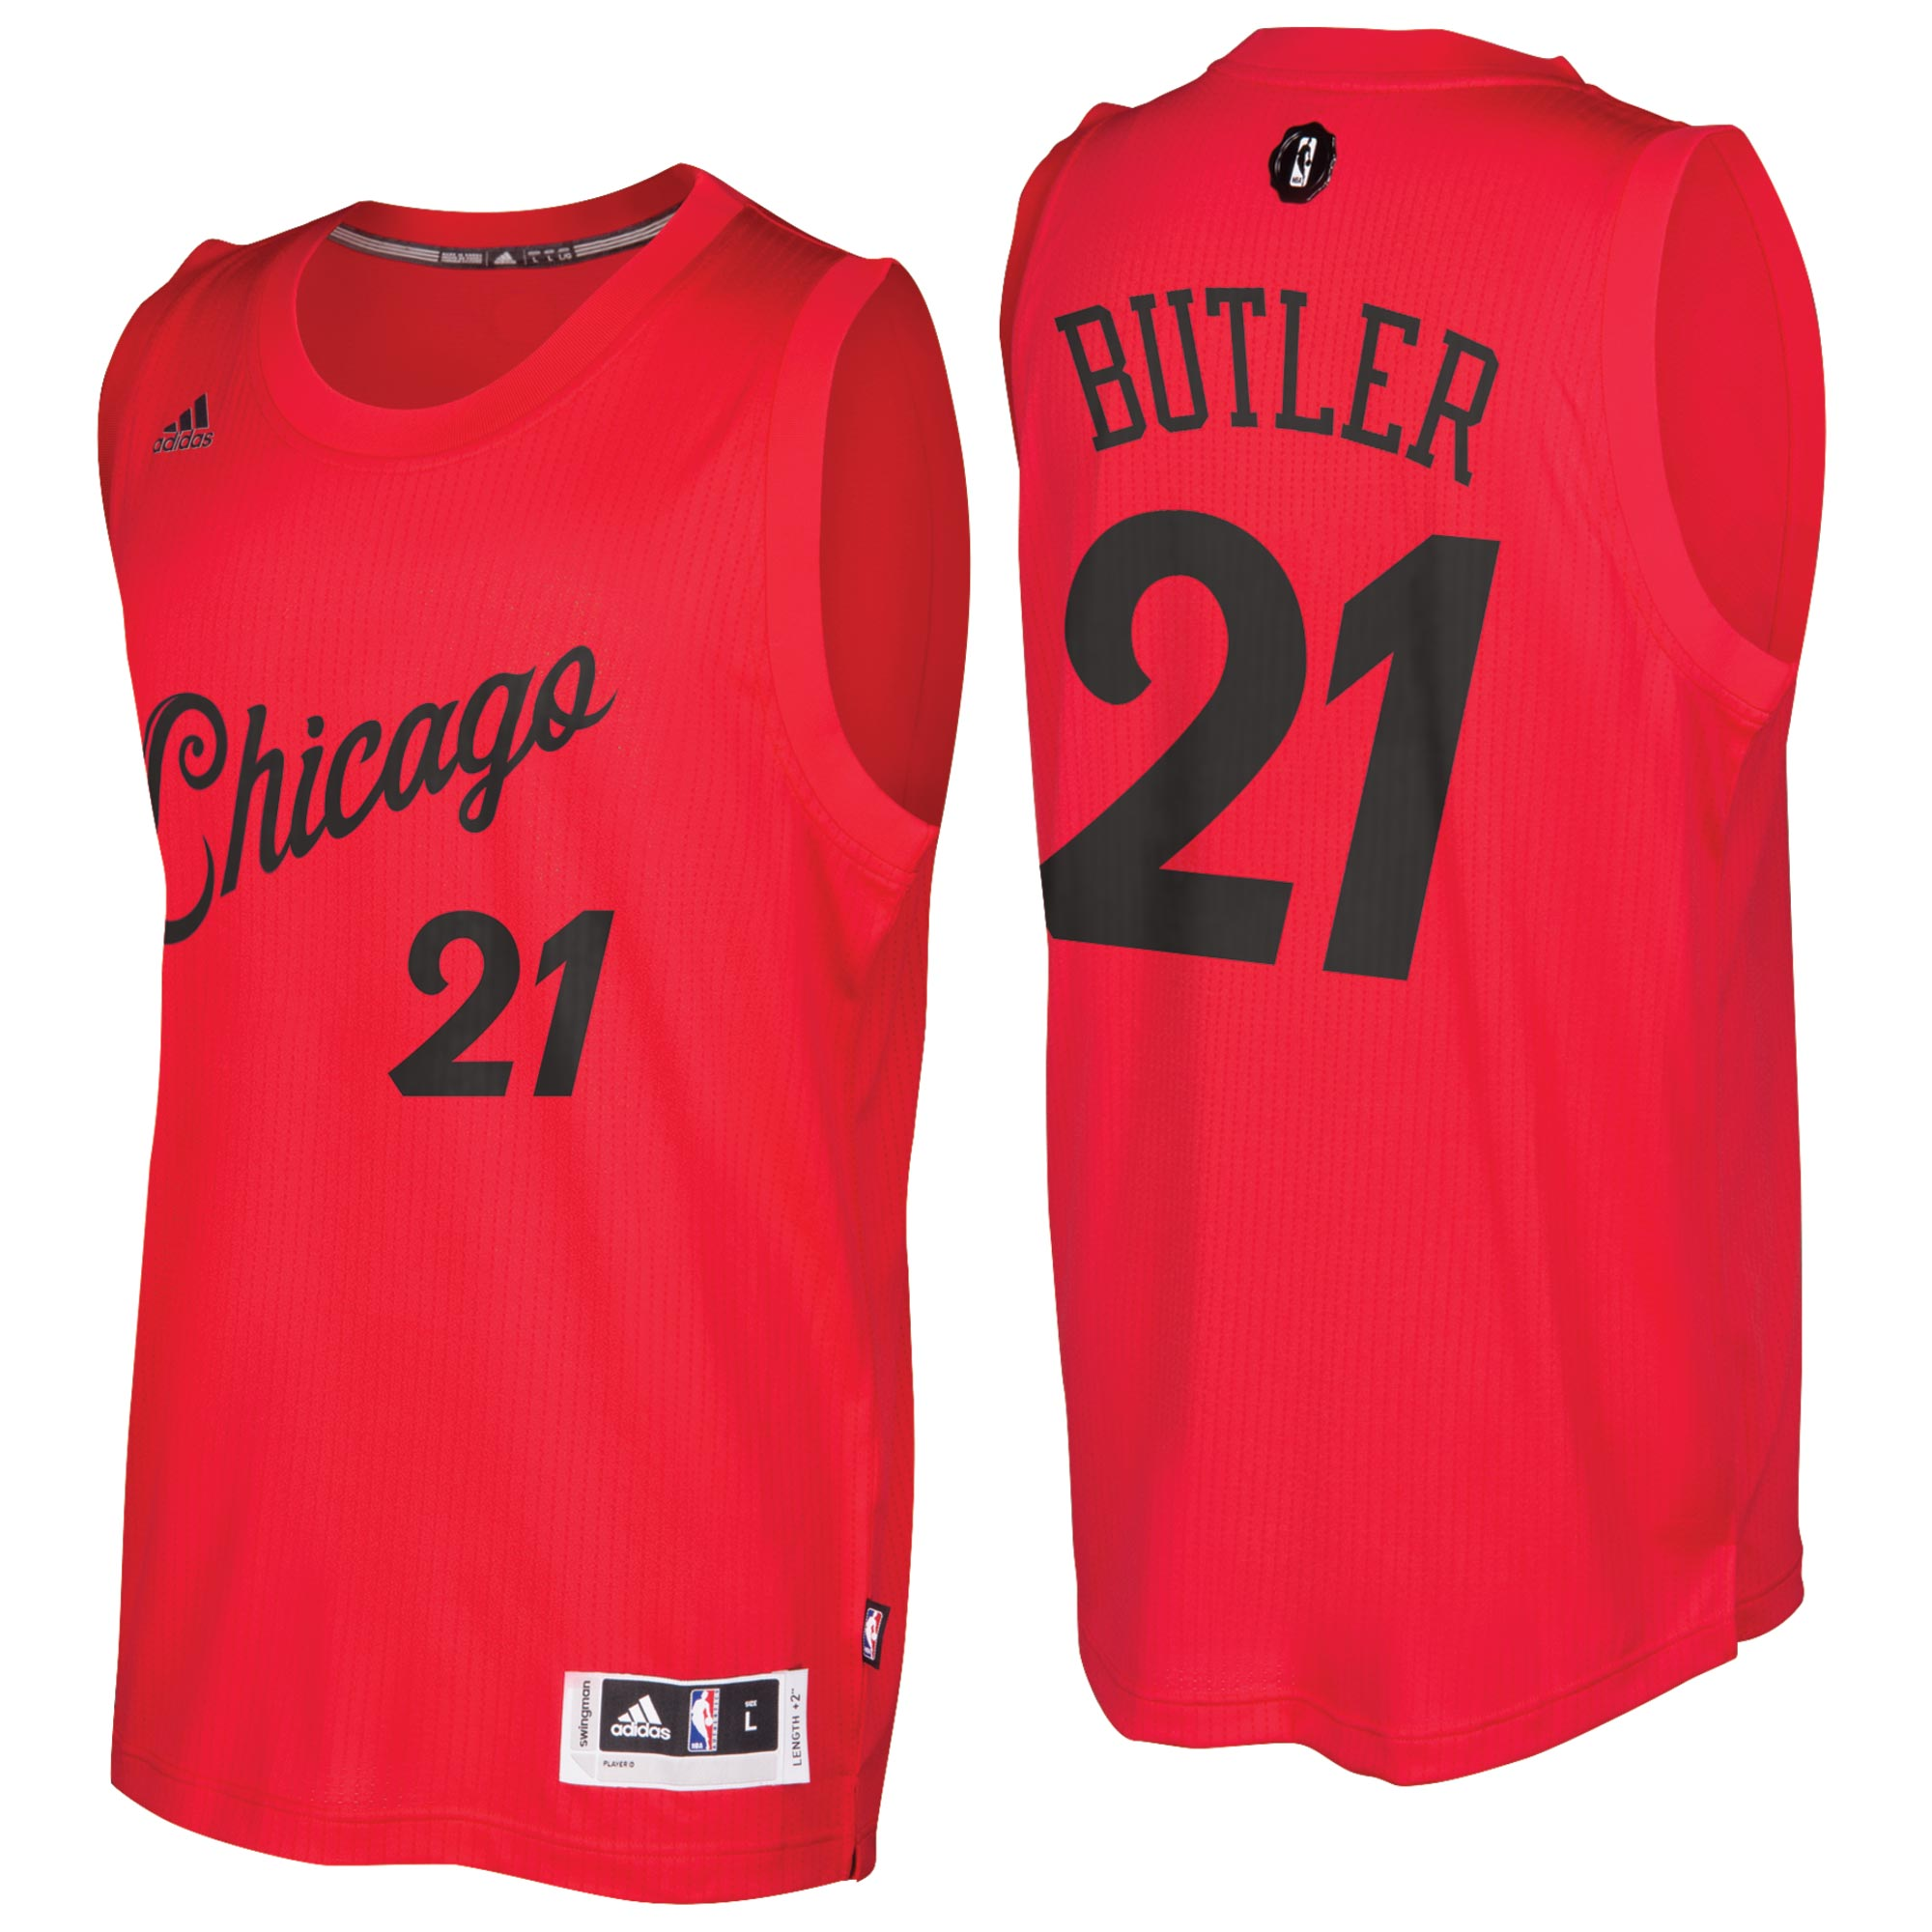 Chicago Bulls X-Mas Day Swingman Jersey 2016 - Jimmy Butler - Youth